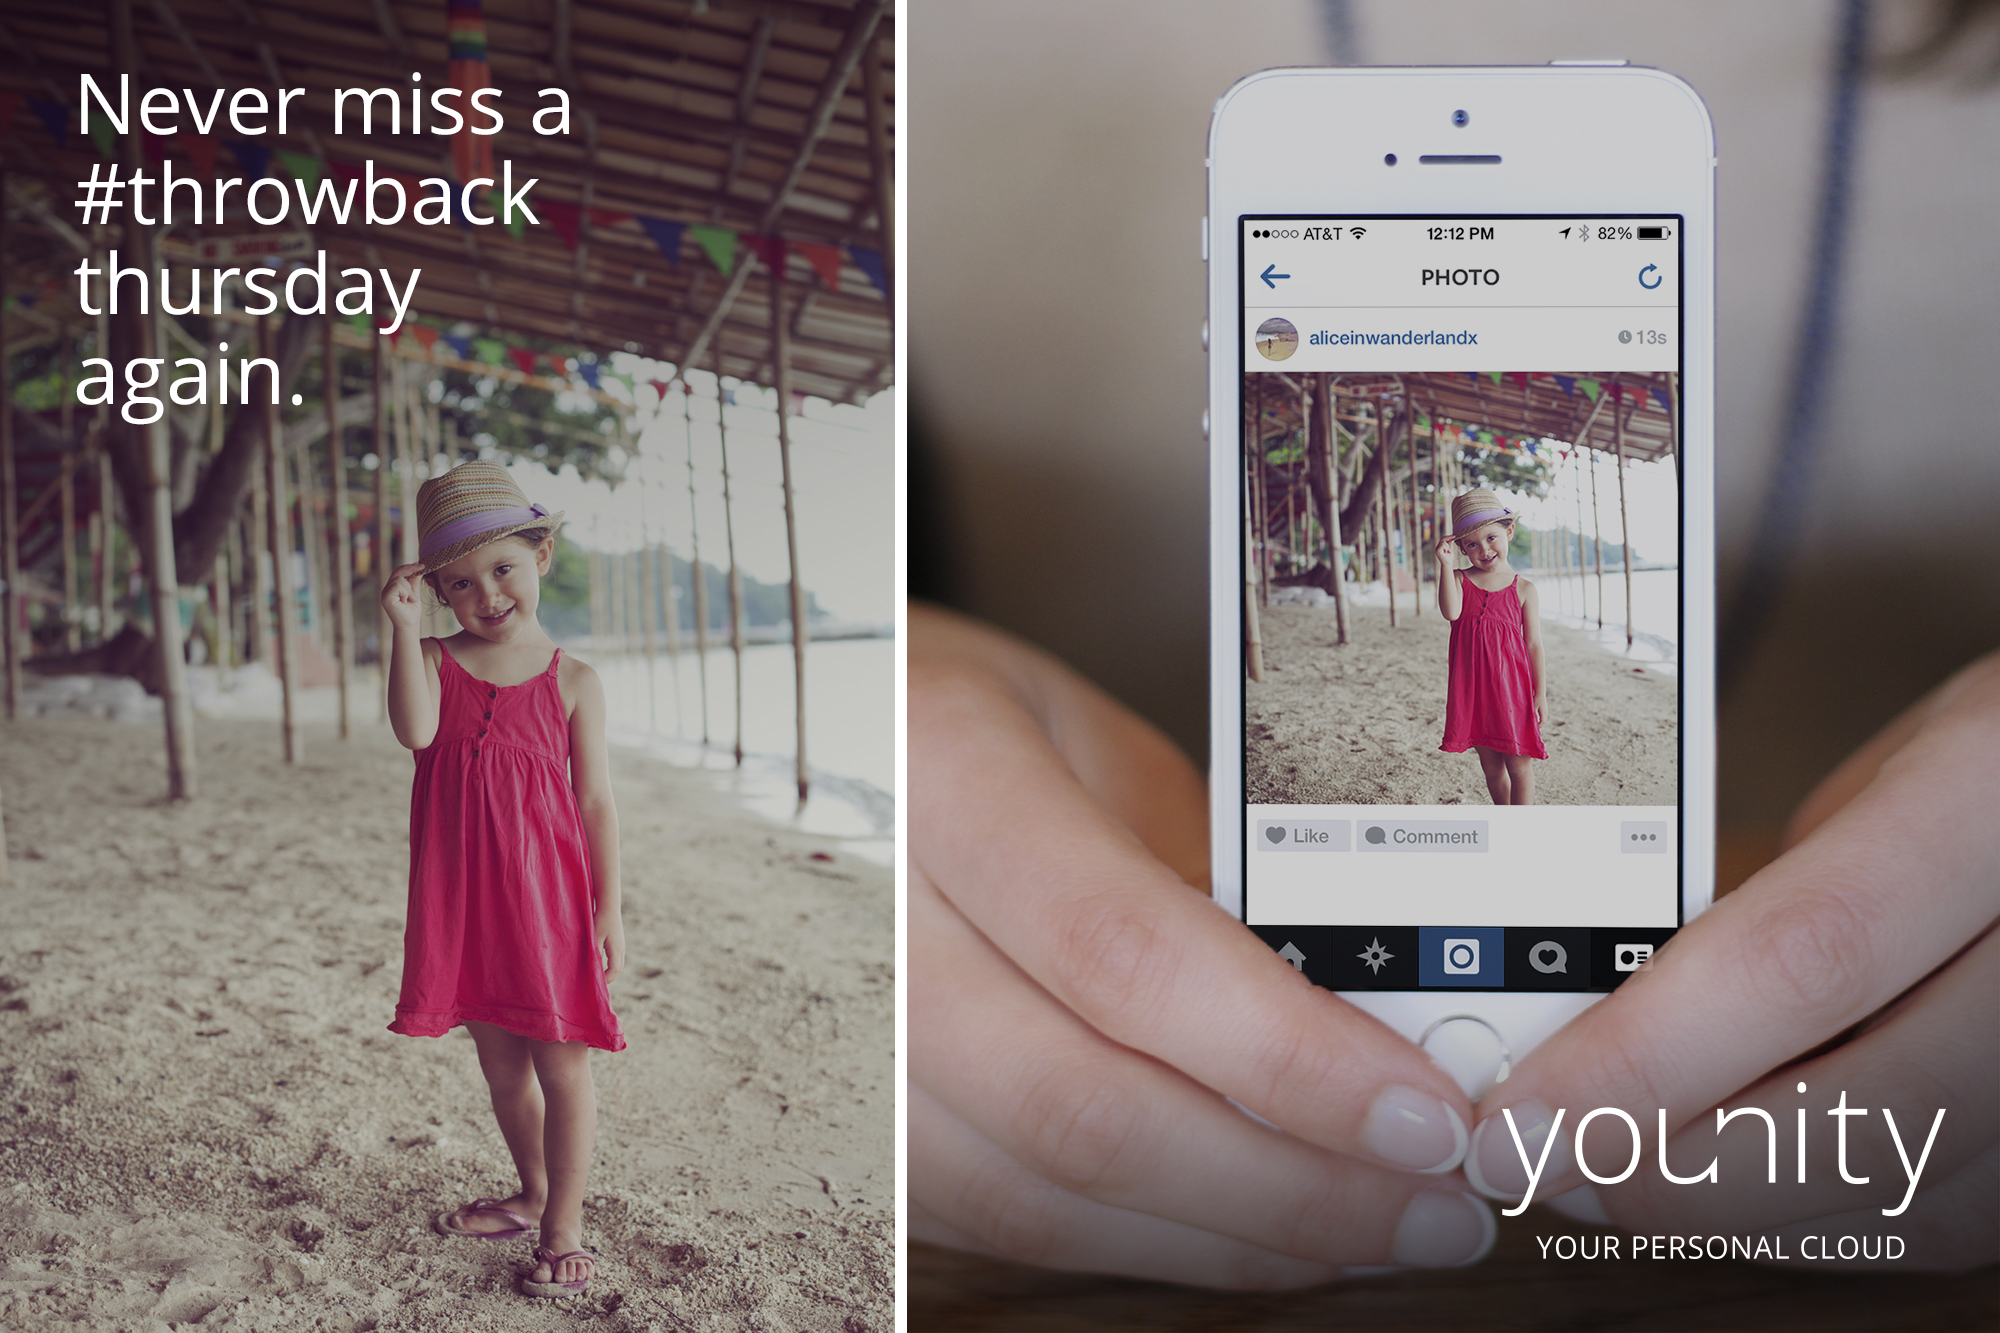 Younity's Personal Cloud Service Adds Instagram Support For Easier